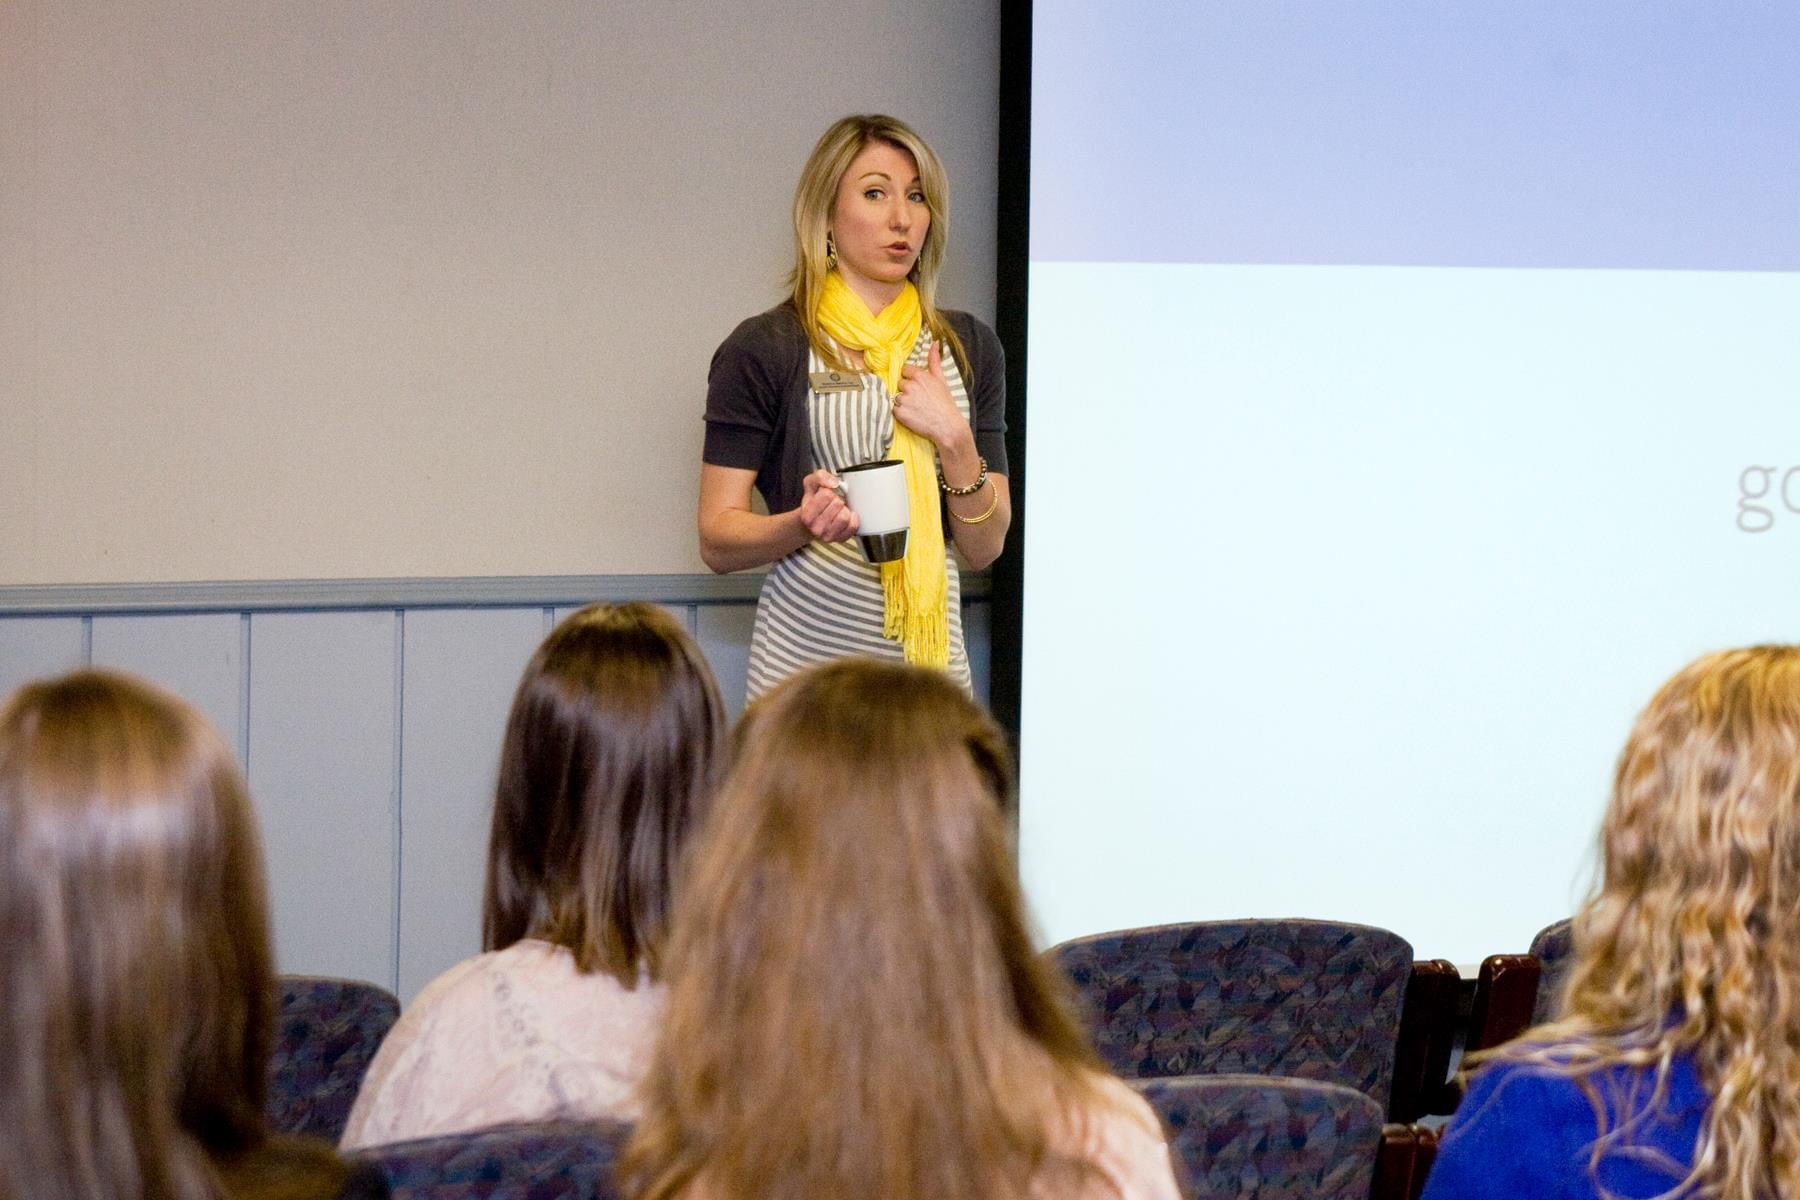 Blonde woman in a yellow scarf giving a standing presentation in front of a screen with a coffee mug in her hand